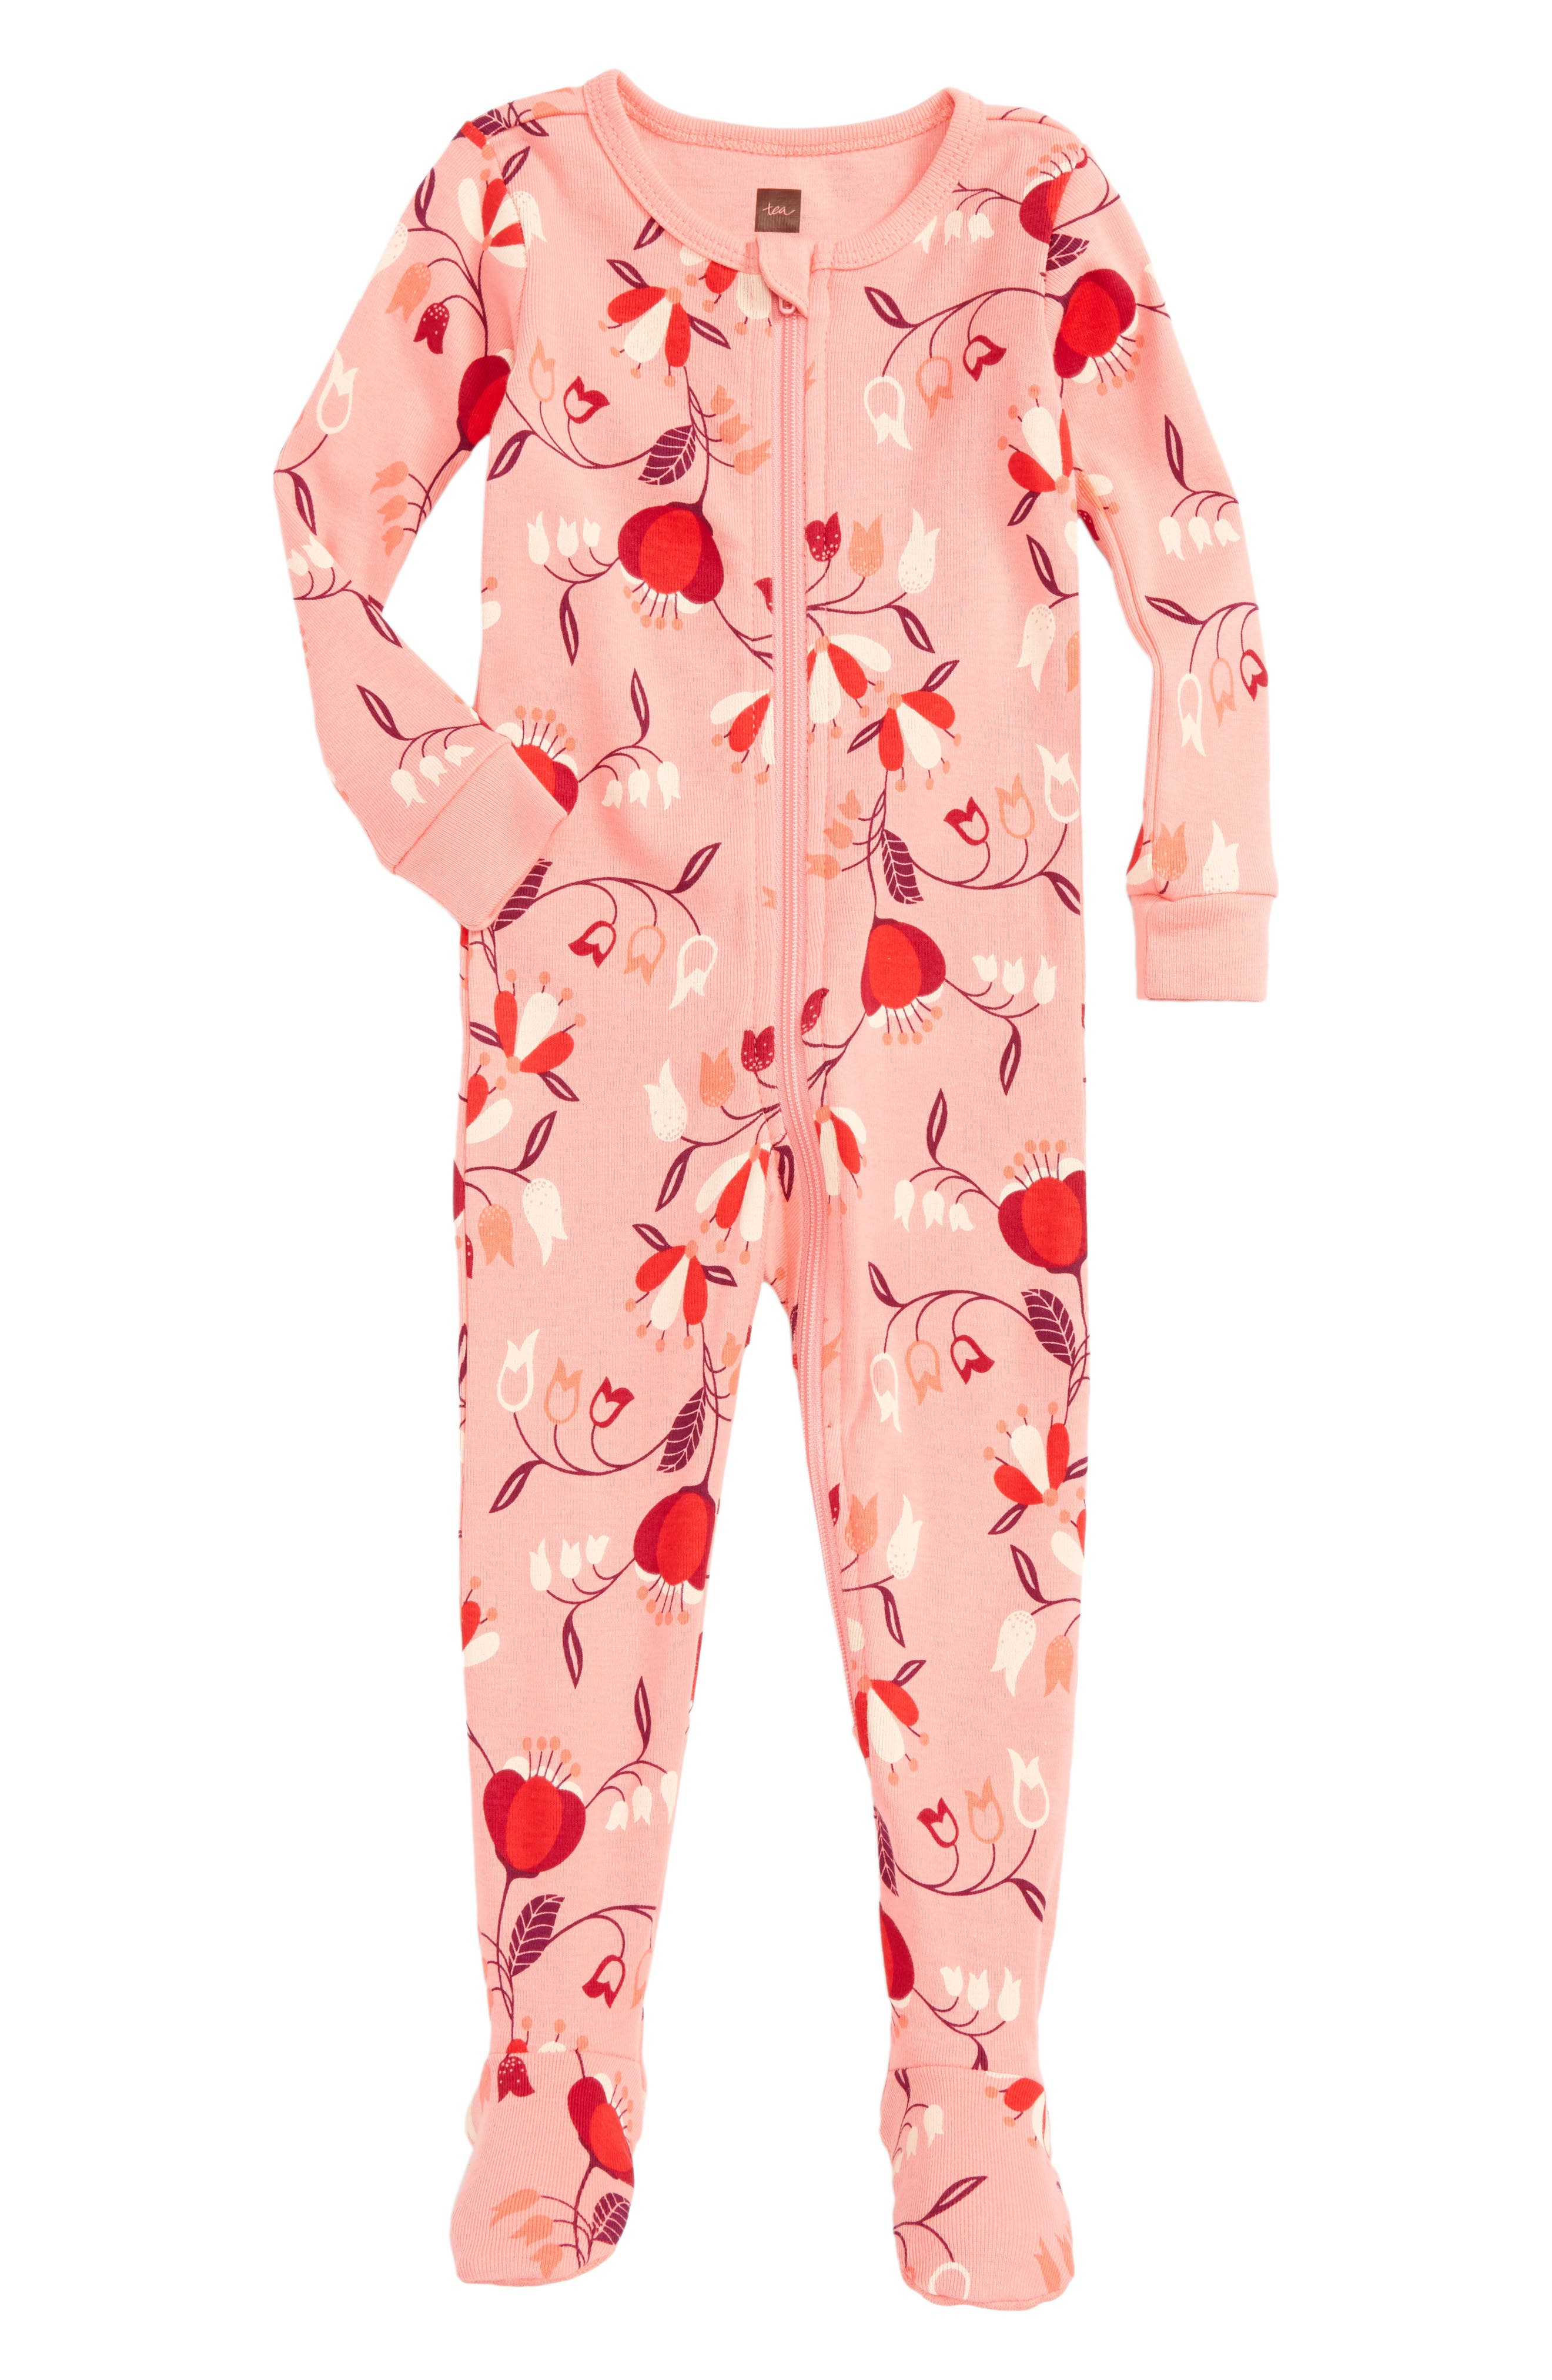 Caer Fitted One-Piece Pajamas,                         Main,                         color, 955